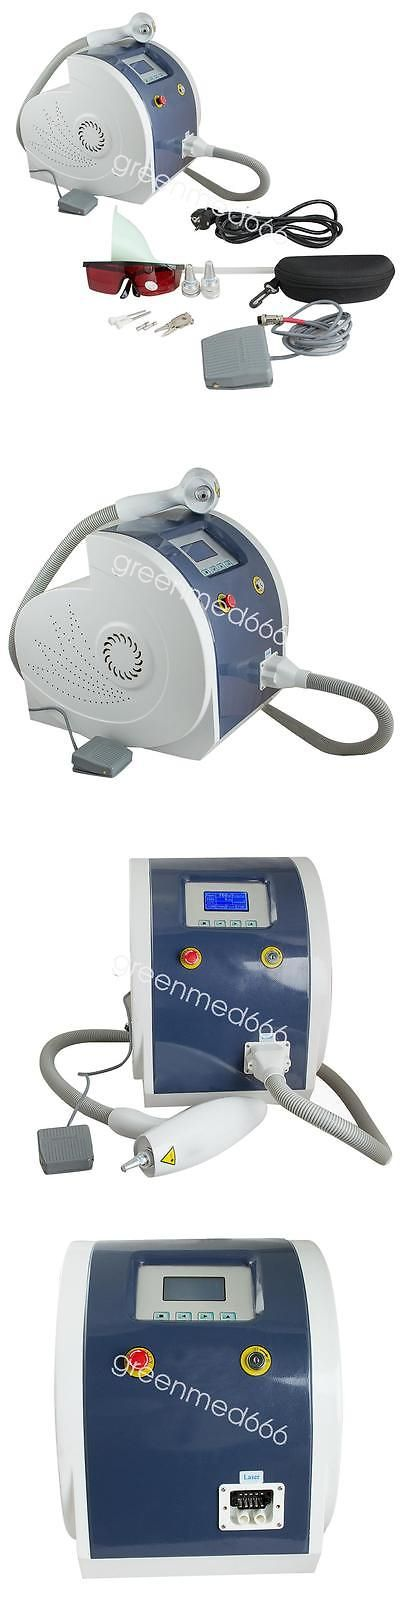 Tattoo Removal Machines: Carejoy Laser Tattoo Eyebrow Pigment Removal Beauty Machine 2016 New BUY IT NOW ONLY: $1190.0